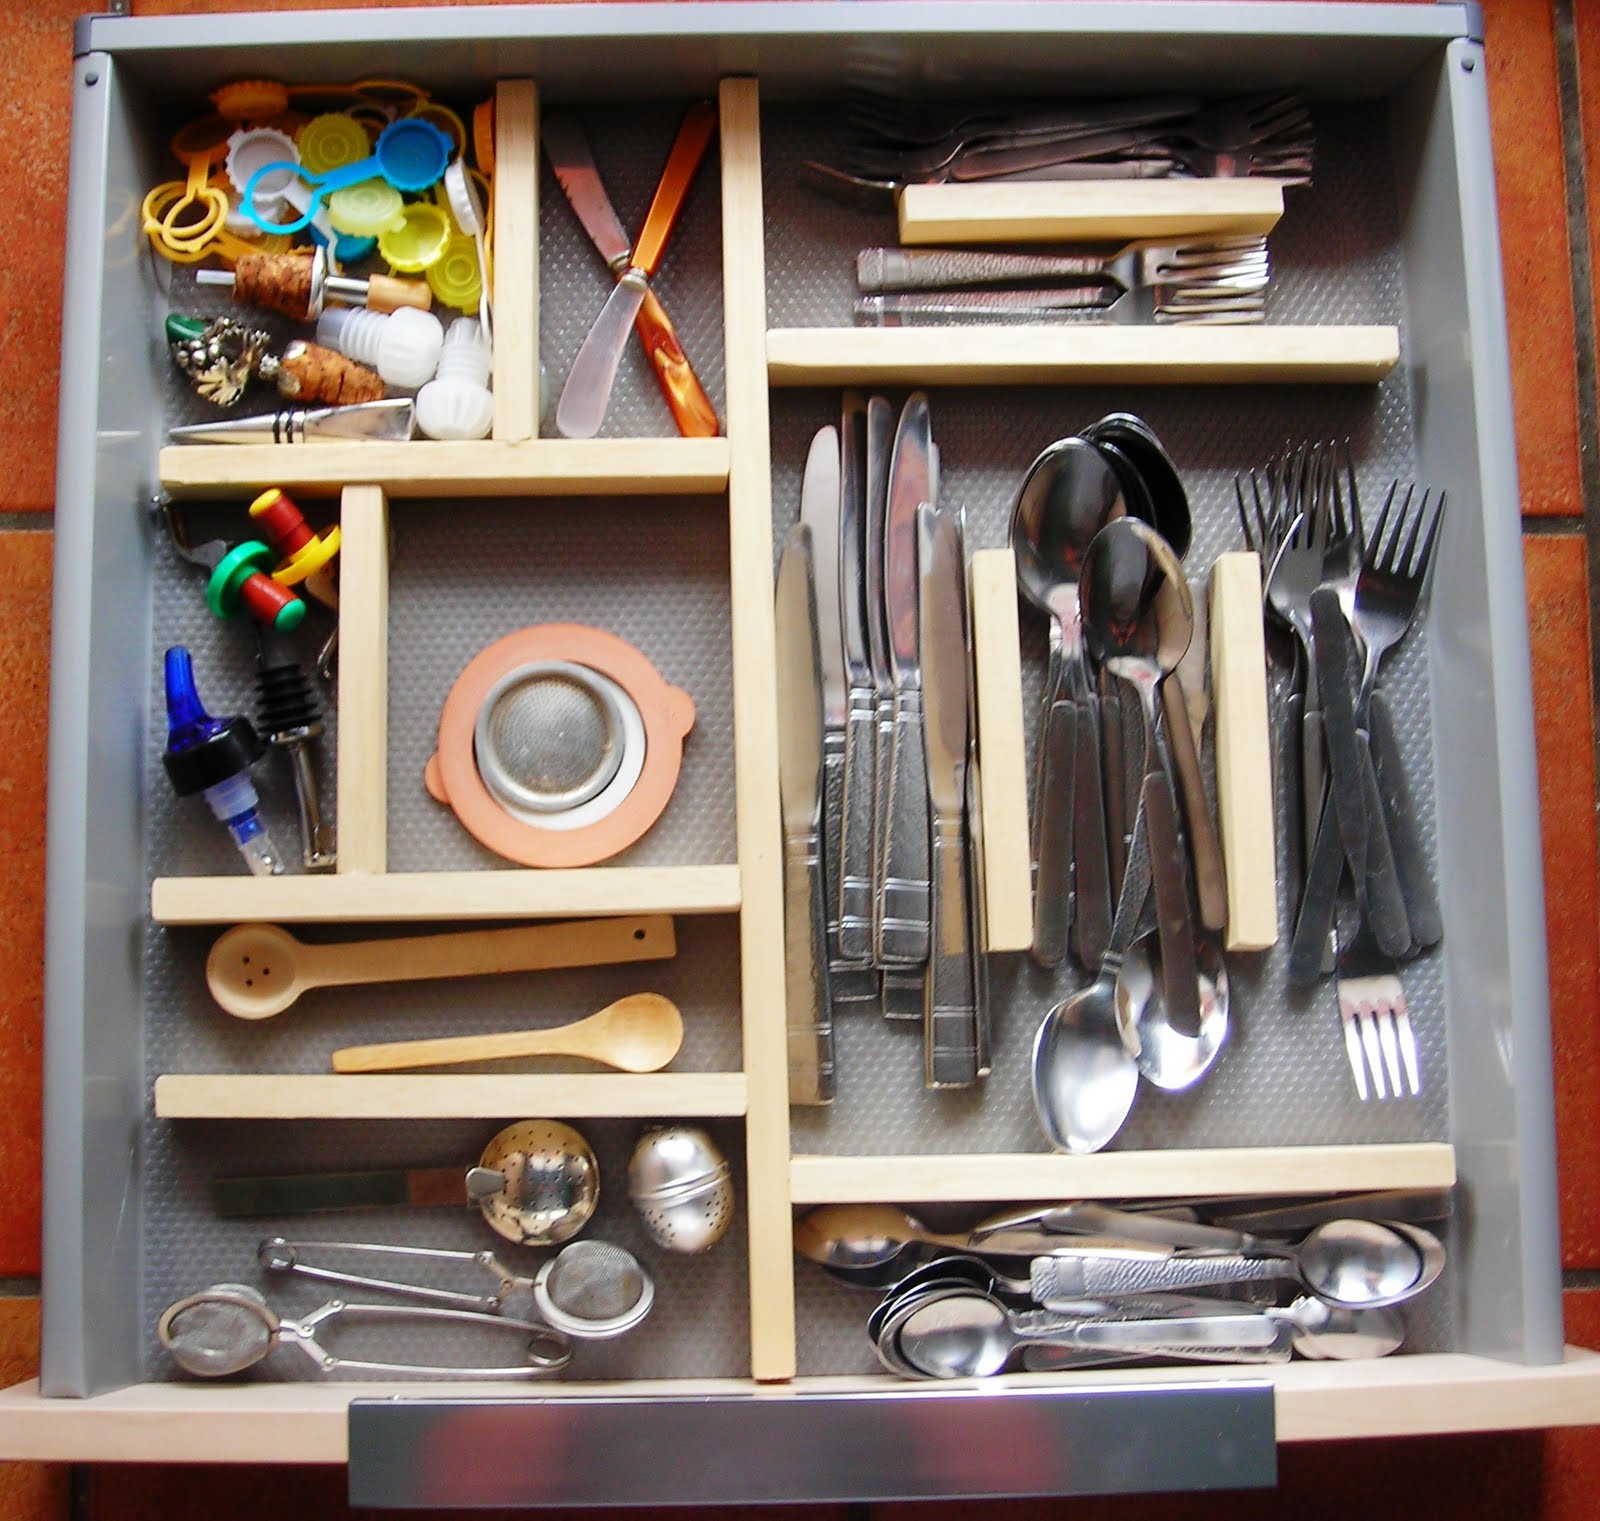 Kitchen Drawer Organizer More Kitchen Drawers! - Ikea Hackers - Ikea Hackers